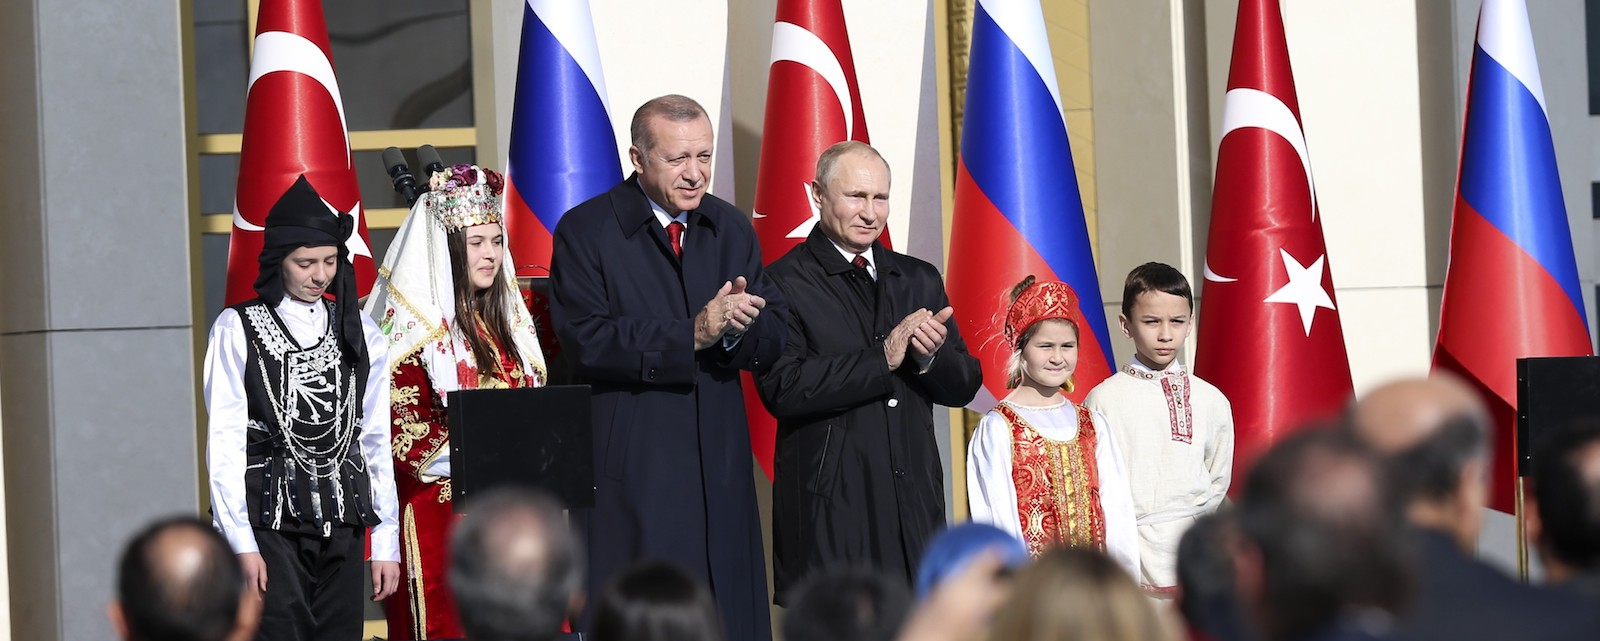 Turkish President Recep Tayyip Erdogan and Russian President Vladimir Putin attend the Akkuyu Nuclear Power Plant groundbreaking ceremony (Photo Murat Kula/Getty)